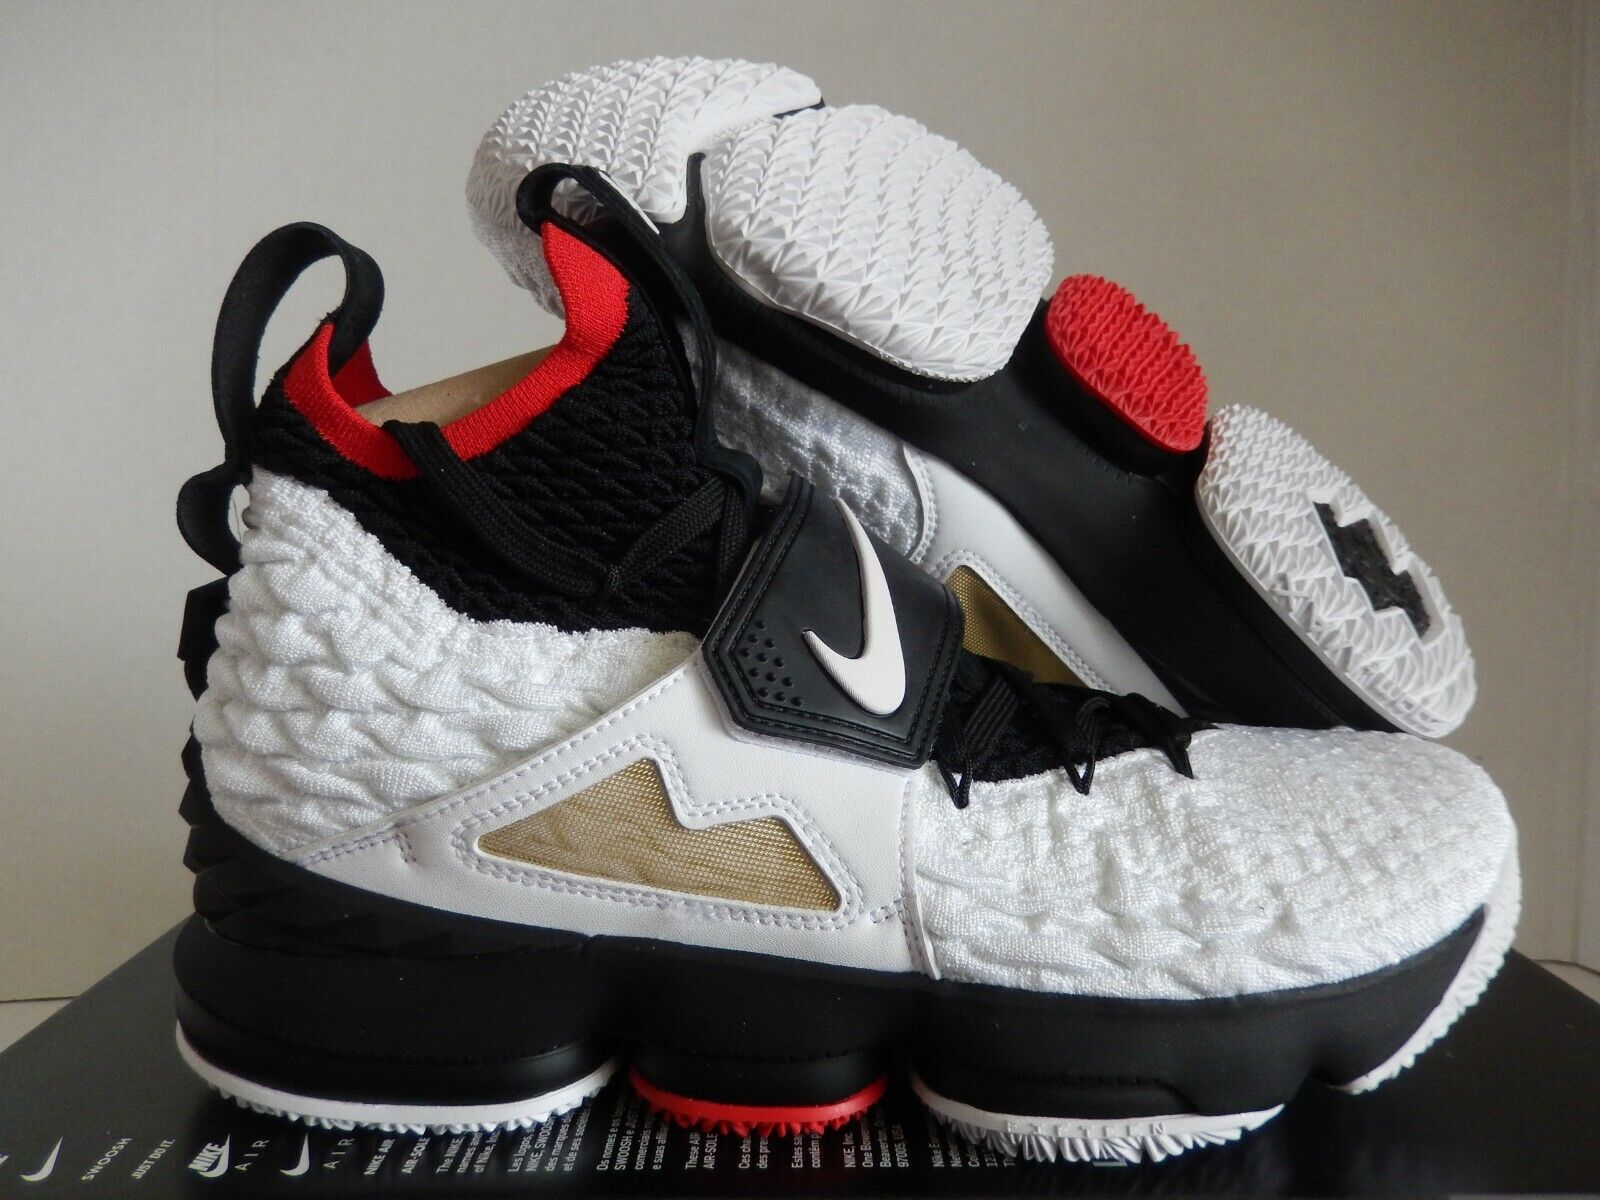 new concept bf0f0 e9226 Nike Lebron XV 15 Prime Diamond Turf Deion Sanders White Black Ao9144-100 15